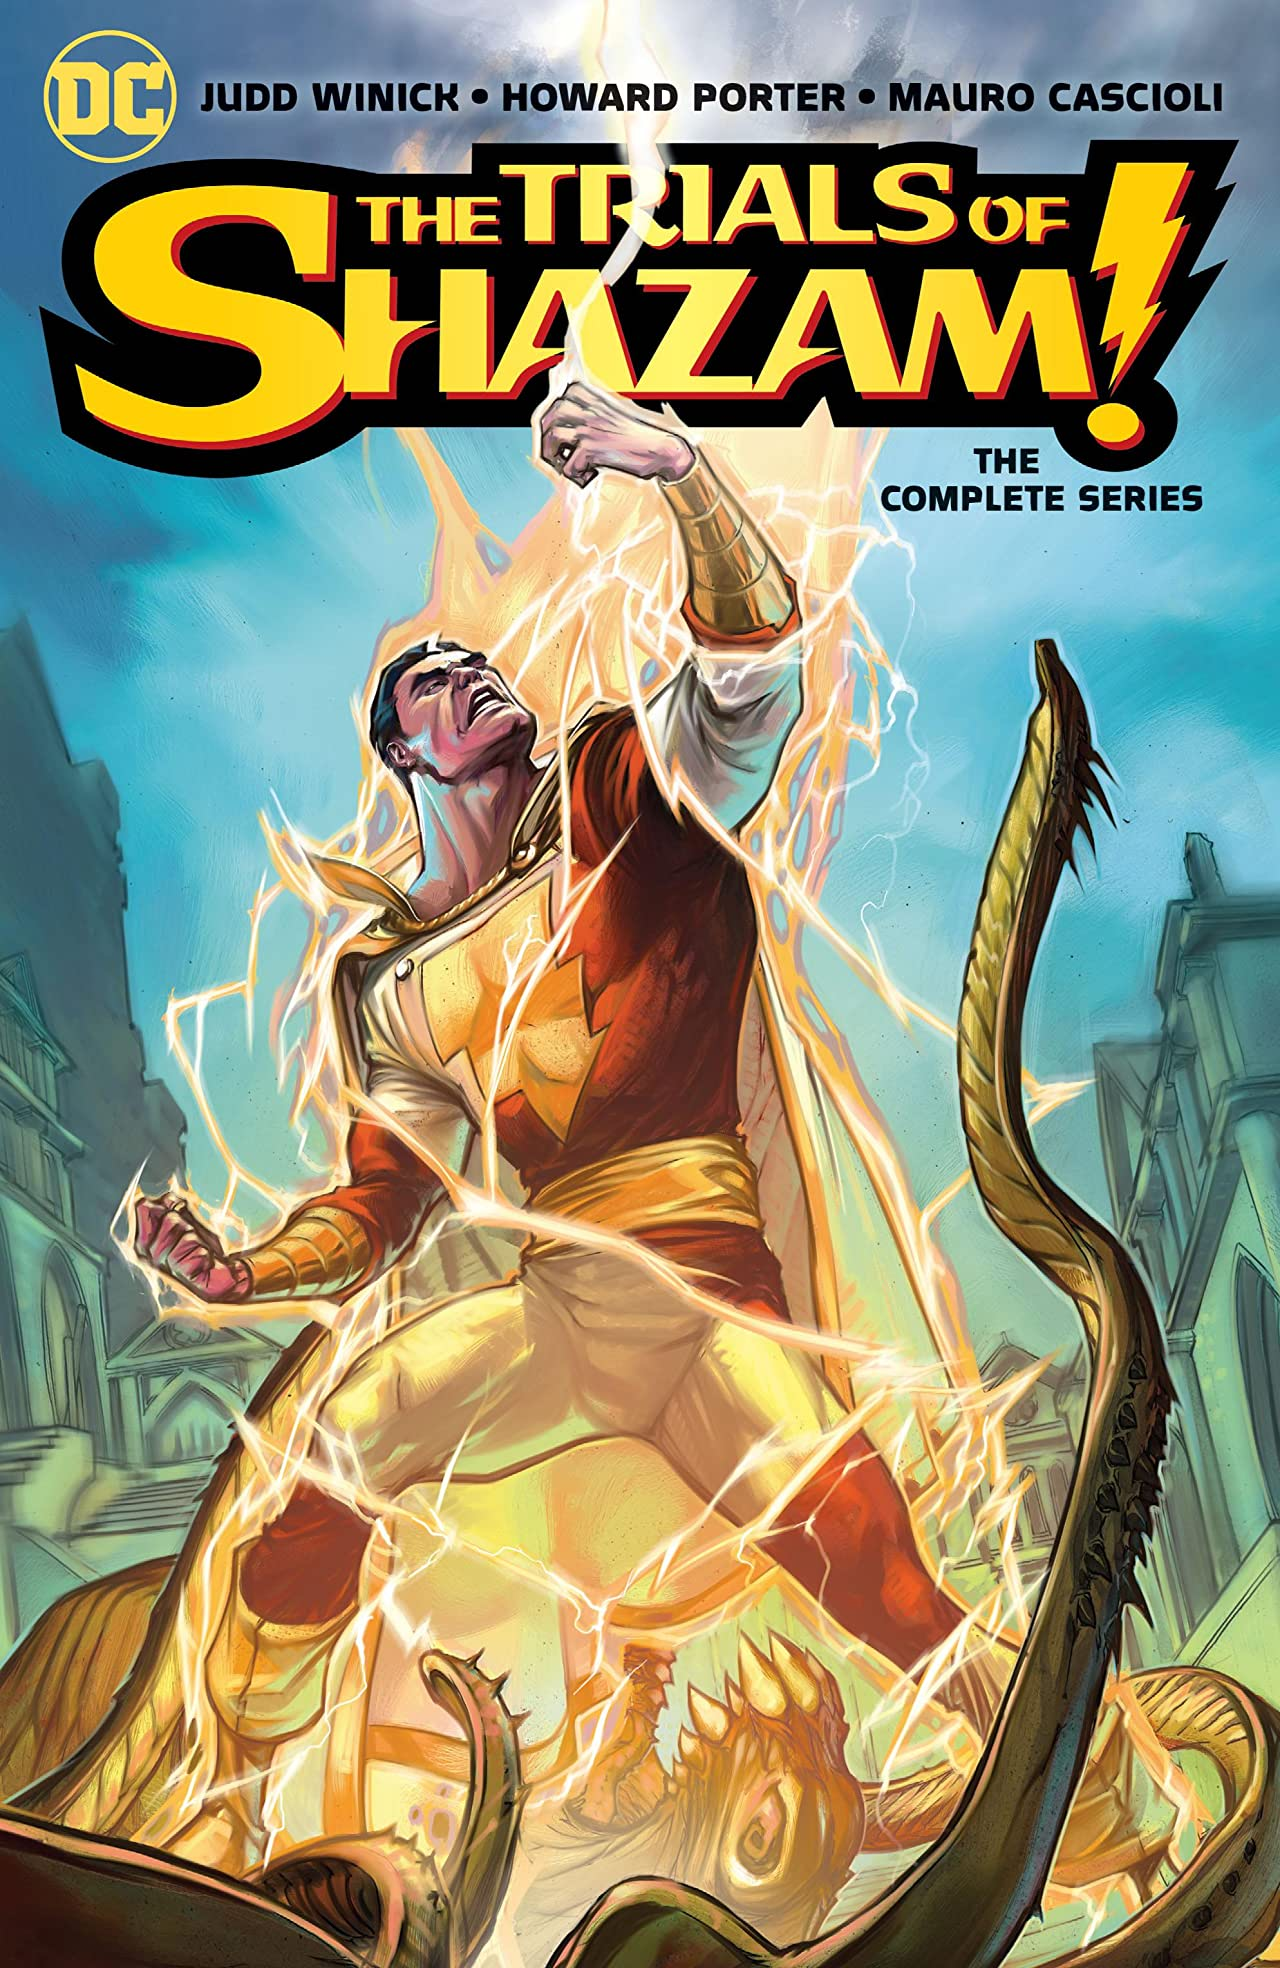 The Trials of Shazam: The Complete Series